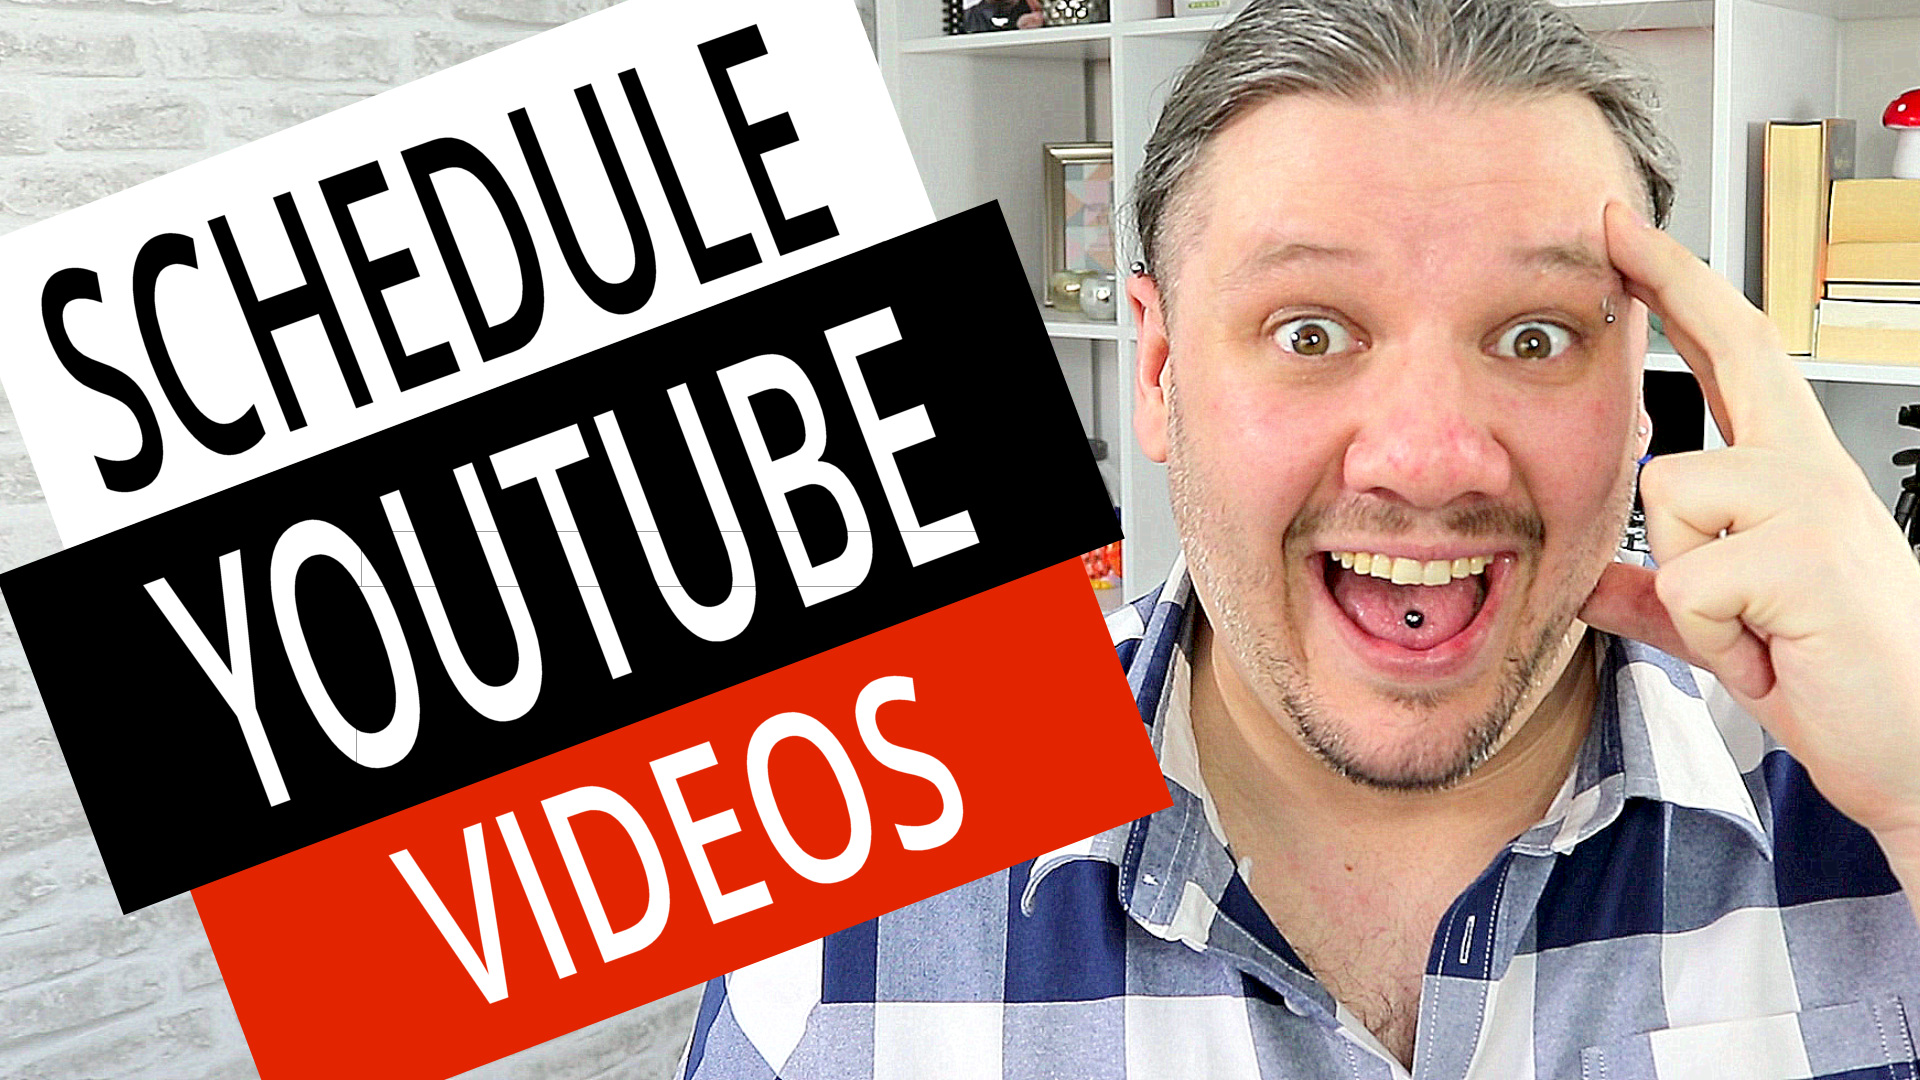 How To Schedule YouTube Videos - Autopost Videos, alan spicer,schedule youtube uploads,schedule youtube videos,how to schedule videos on youtube,how to schedule youtube video upload,how to schedule youtube upload,schedule a youtube video upload,how to schedule youtube uploads,how to schedule youtube videos,schedule videos,schedule youtube,how to schedule a youtube video,how to schedule uploads and auto publish youtube videos,schedule youtube videos 2019,schedule youtube video 2019,schedule youtube video